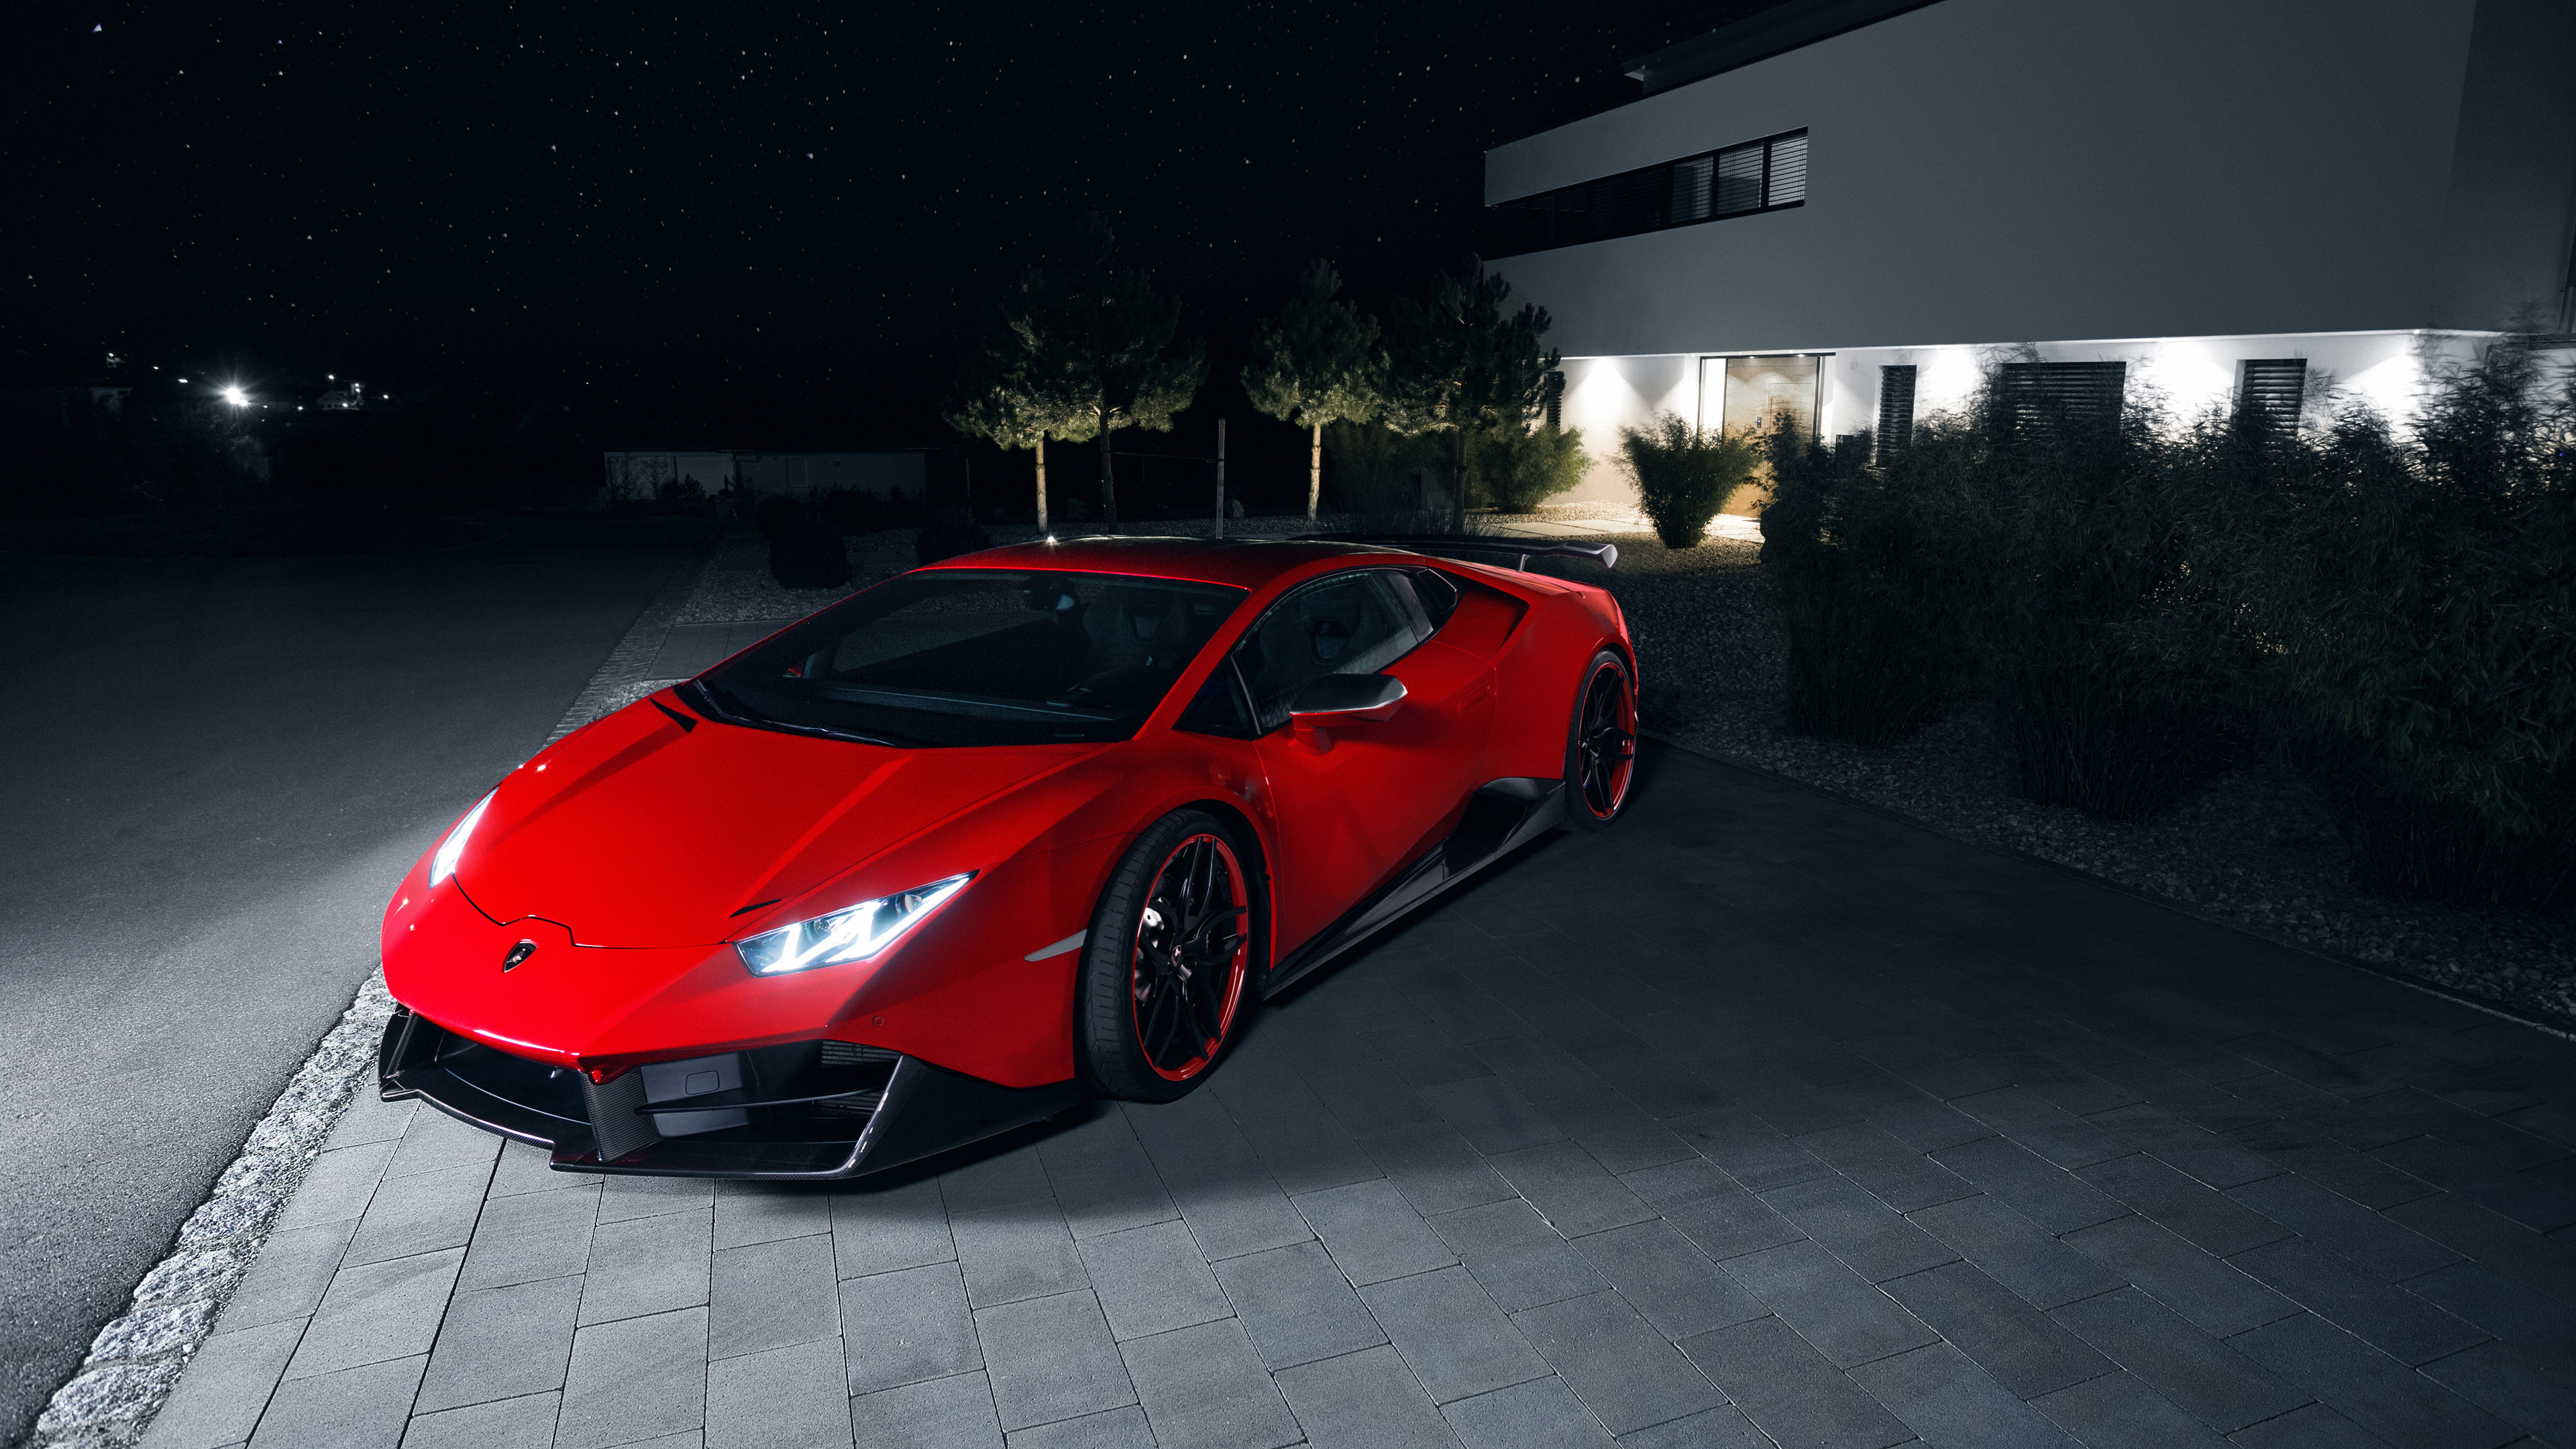 lamborghini wallpapers and desktop backgrounds up to 8K ...